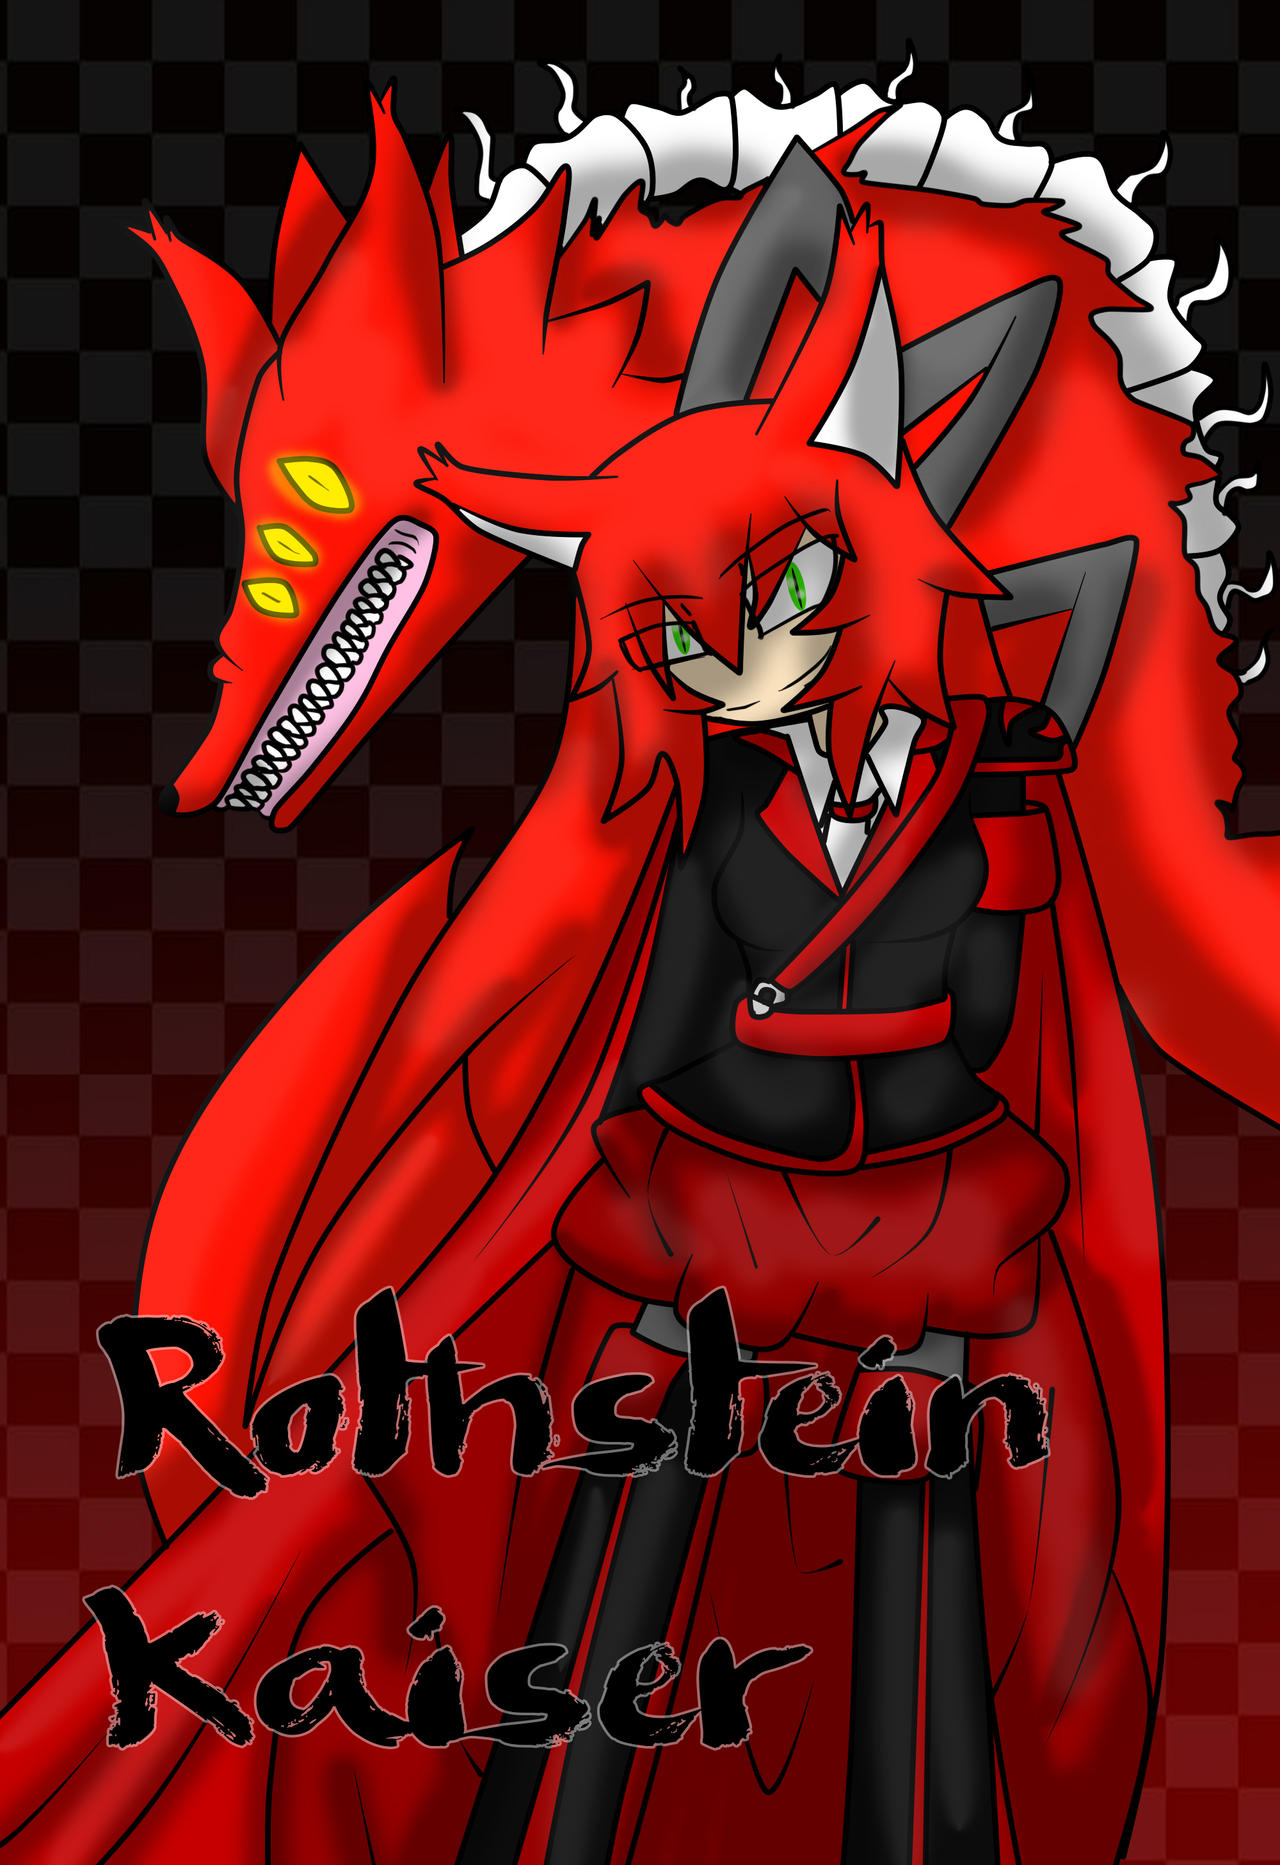 Rothstein-Kaiser's Profile Picture